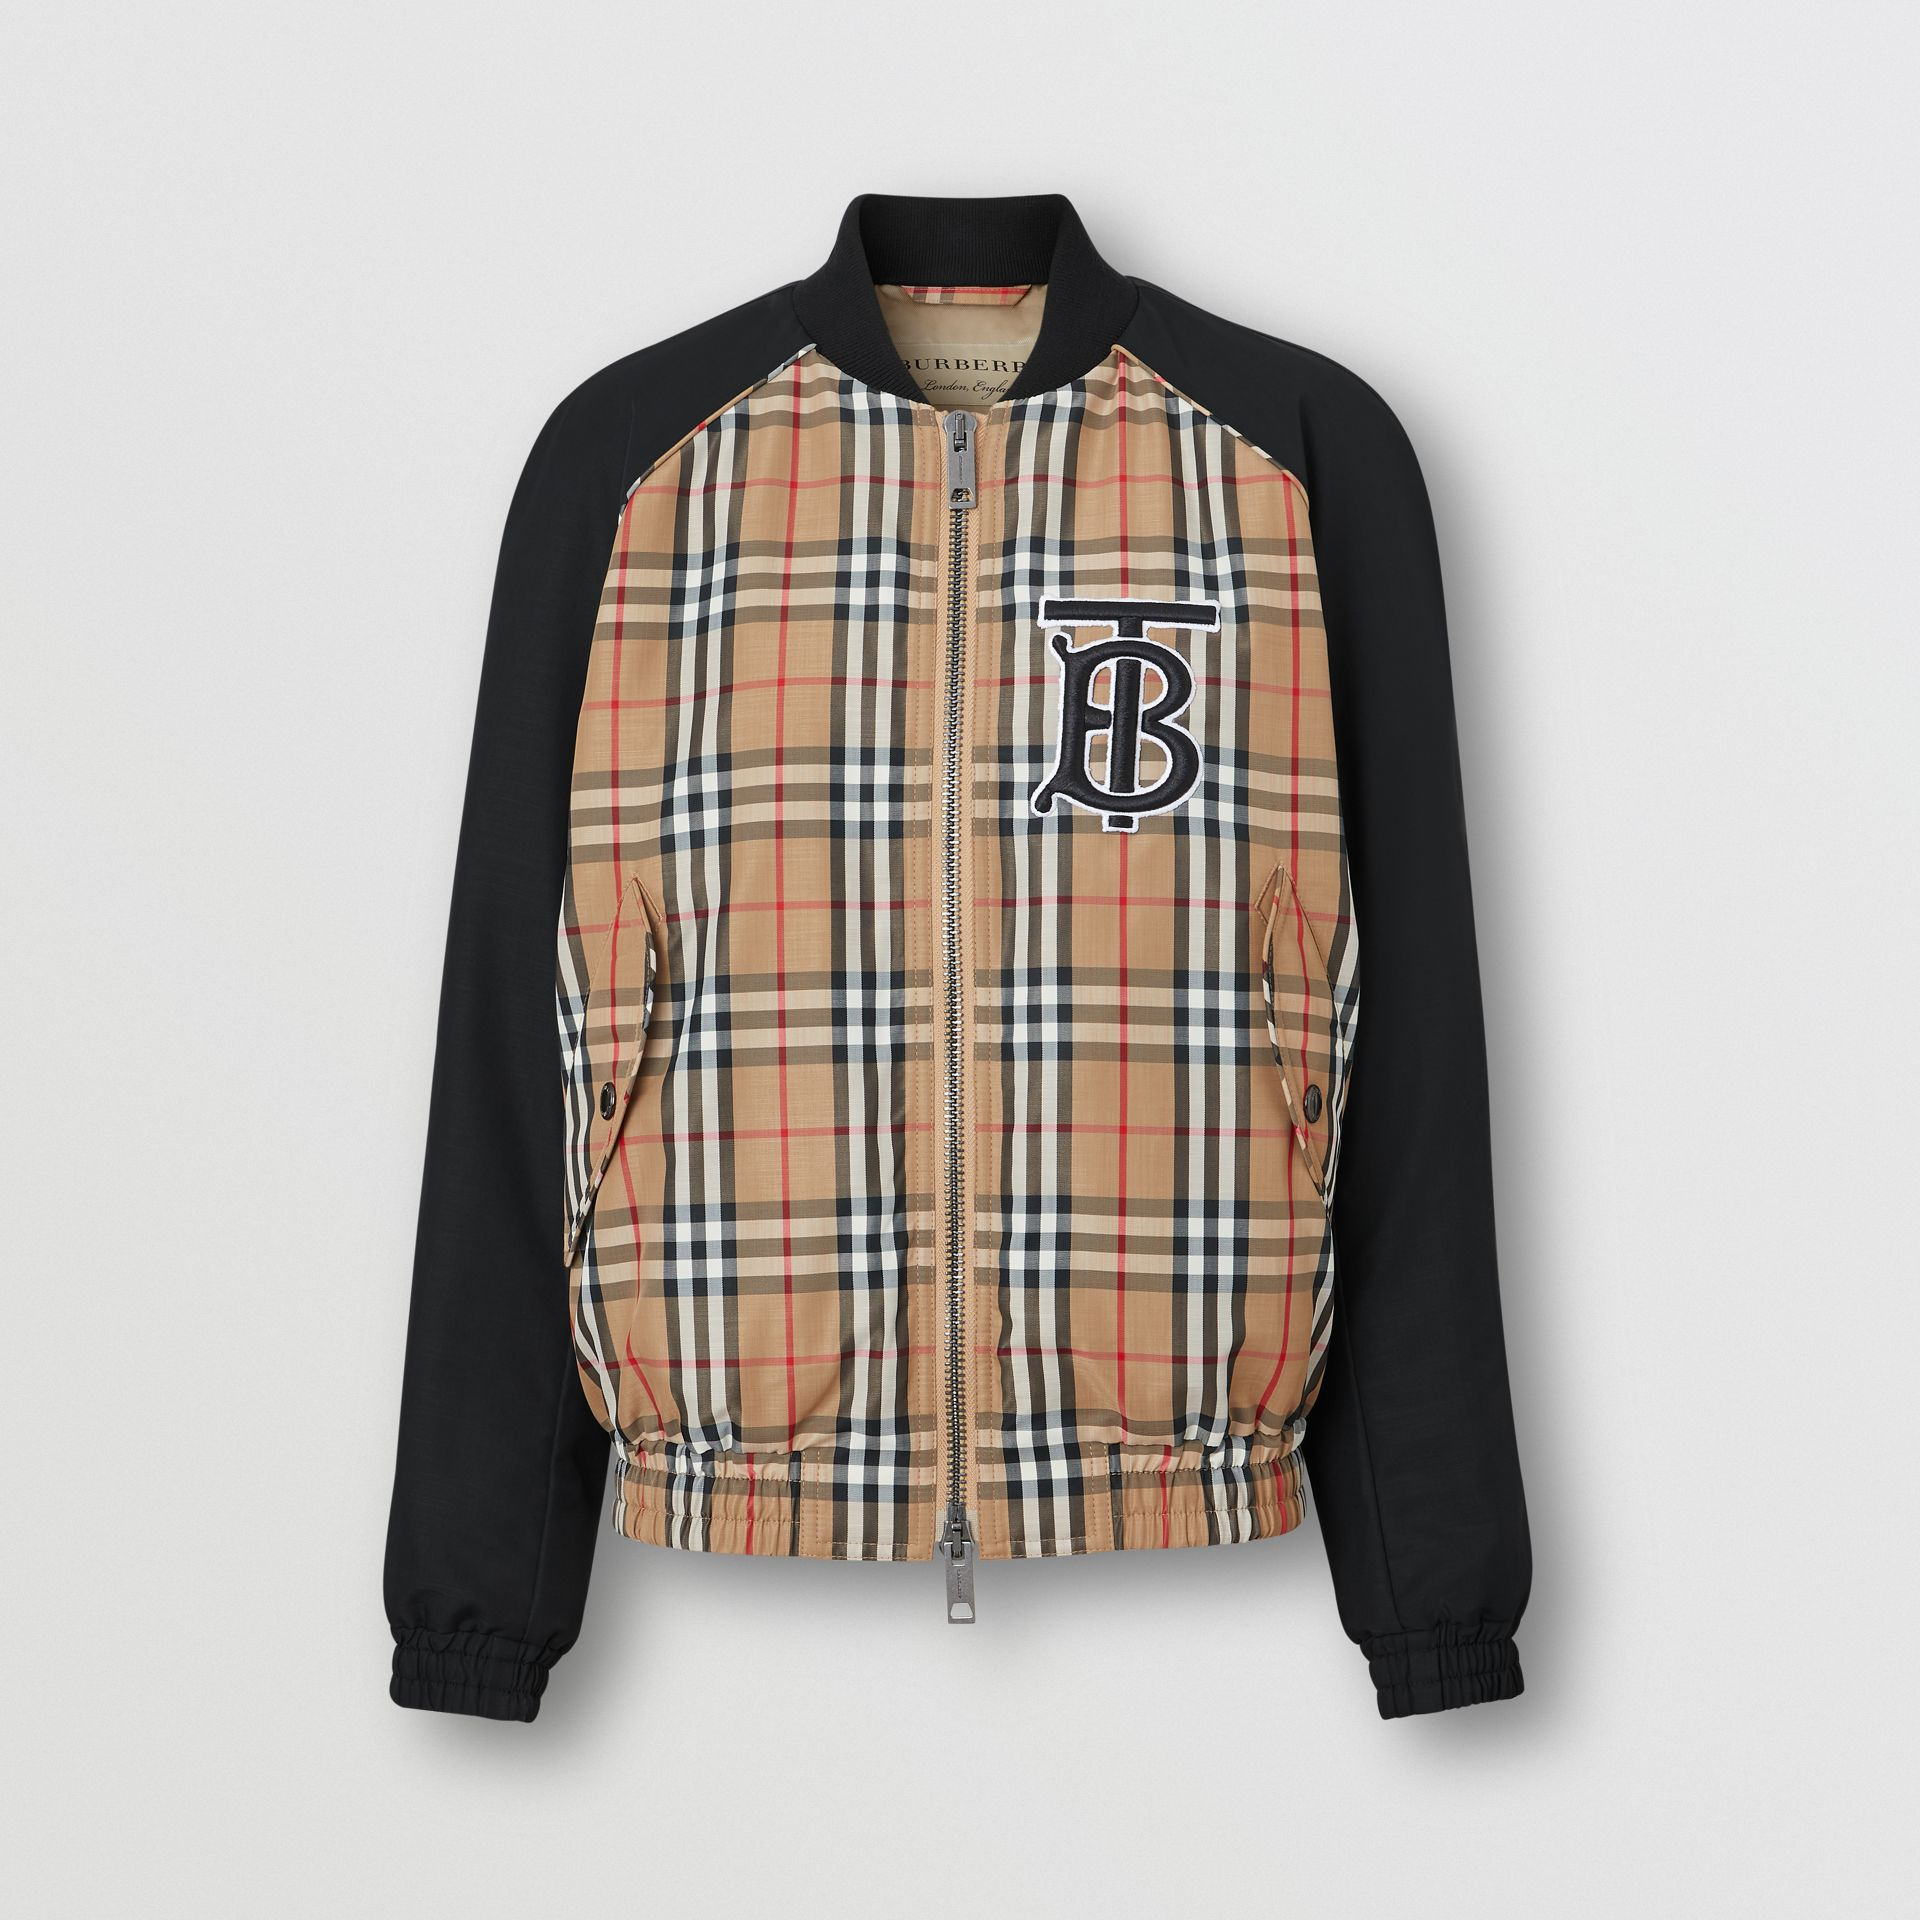 Monogram Motif Vintage Check Bomber Jacket in Black - Women | Burberry Australia - gallery image 3